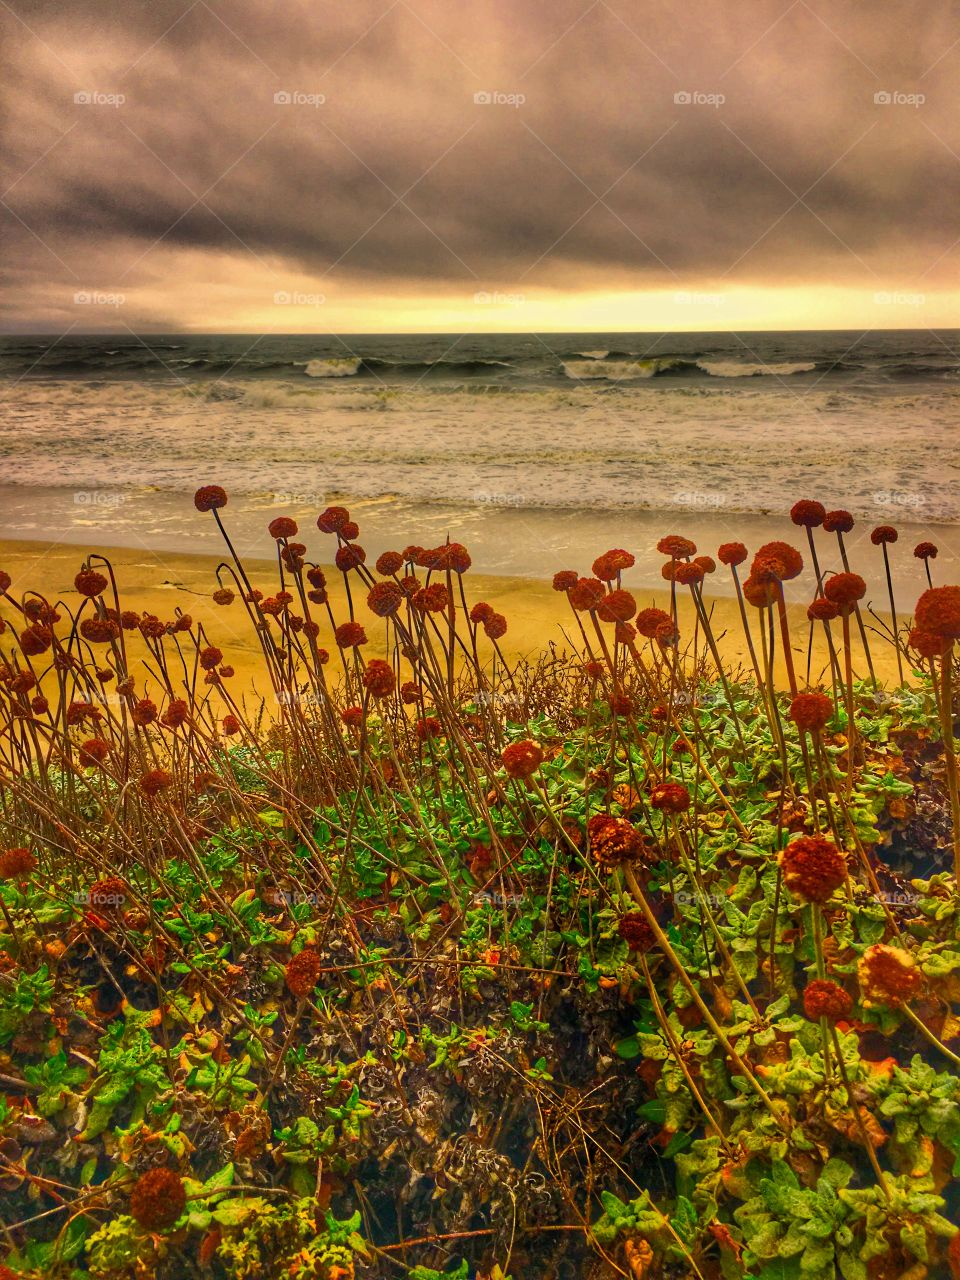 Flowers at beach during sunset